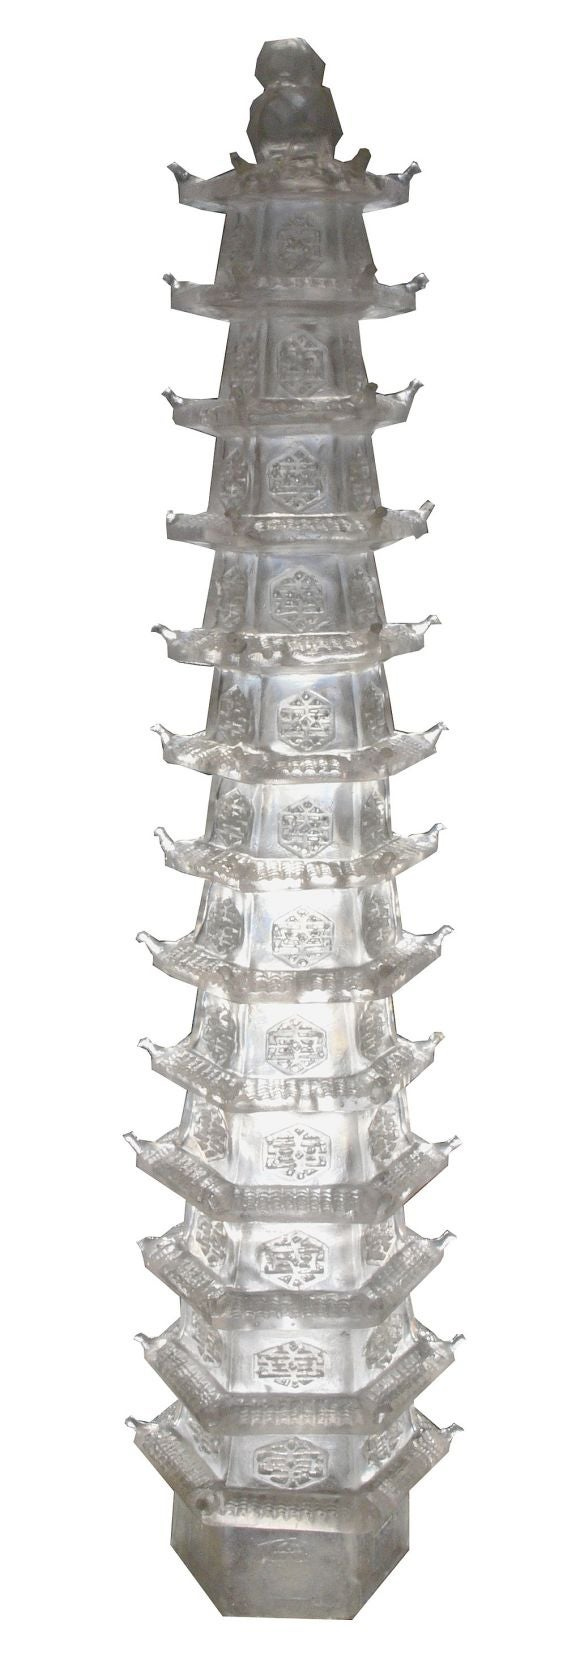 Pair of Crystalline Resin Pagodas by Tony Duquette at 1stdibs